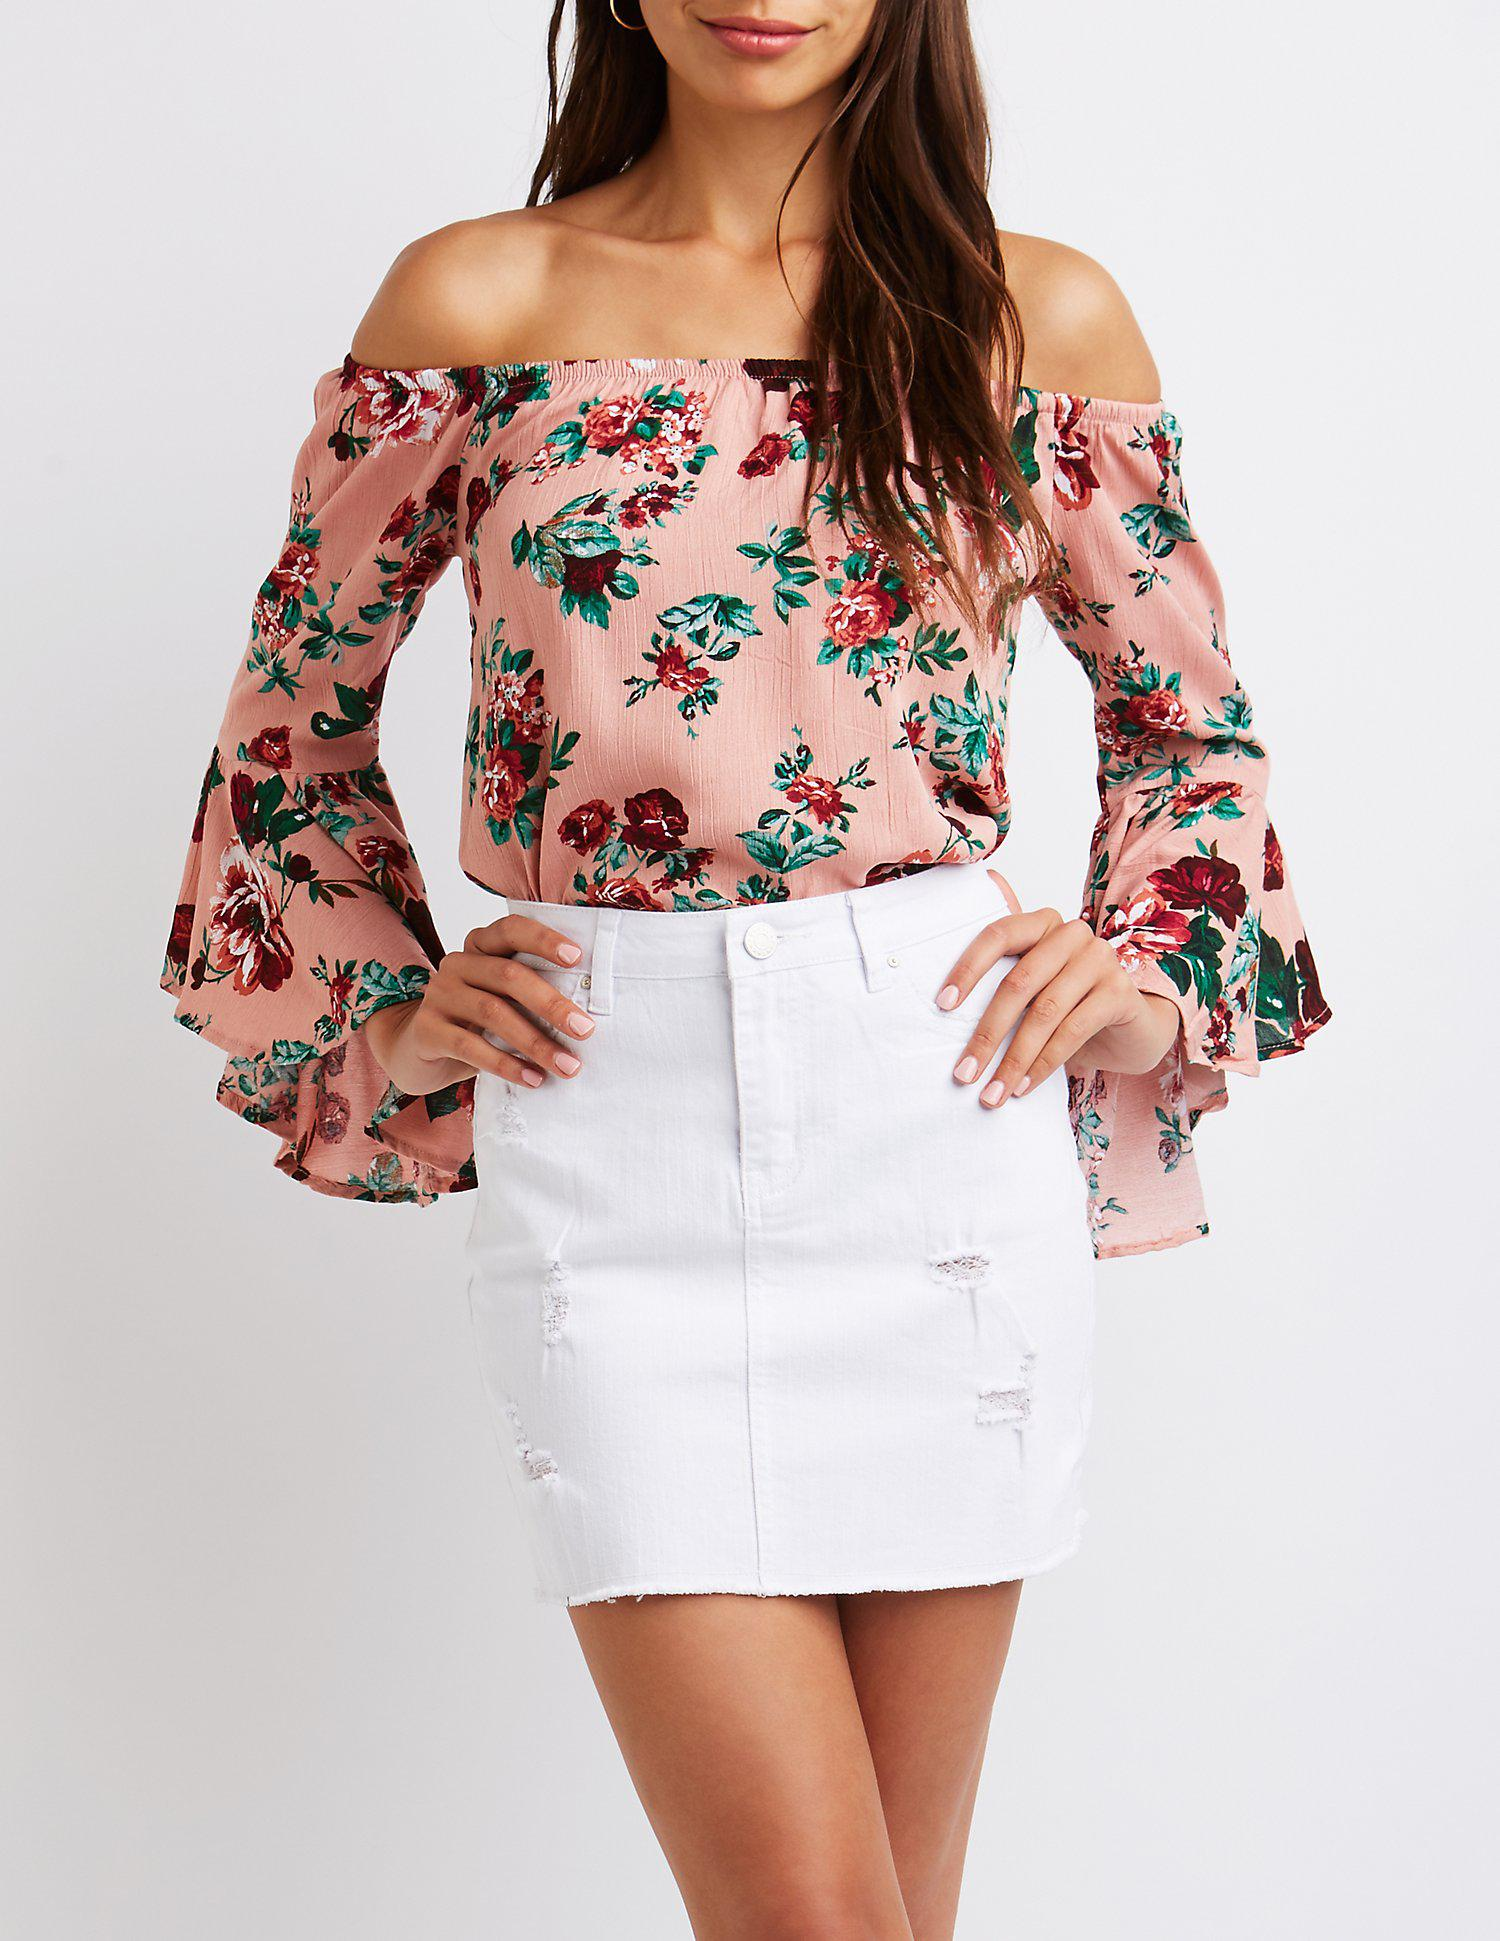 423d475656e3a9 Lyst - Charlotte Russe Floral Off The Shoulder Top in Purple